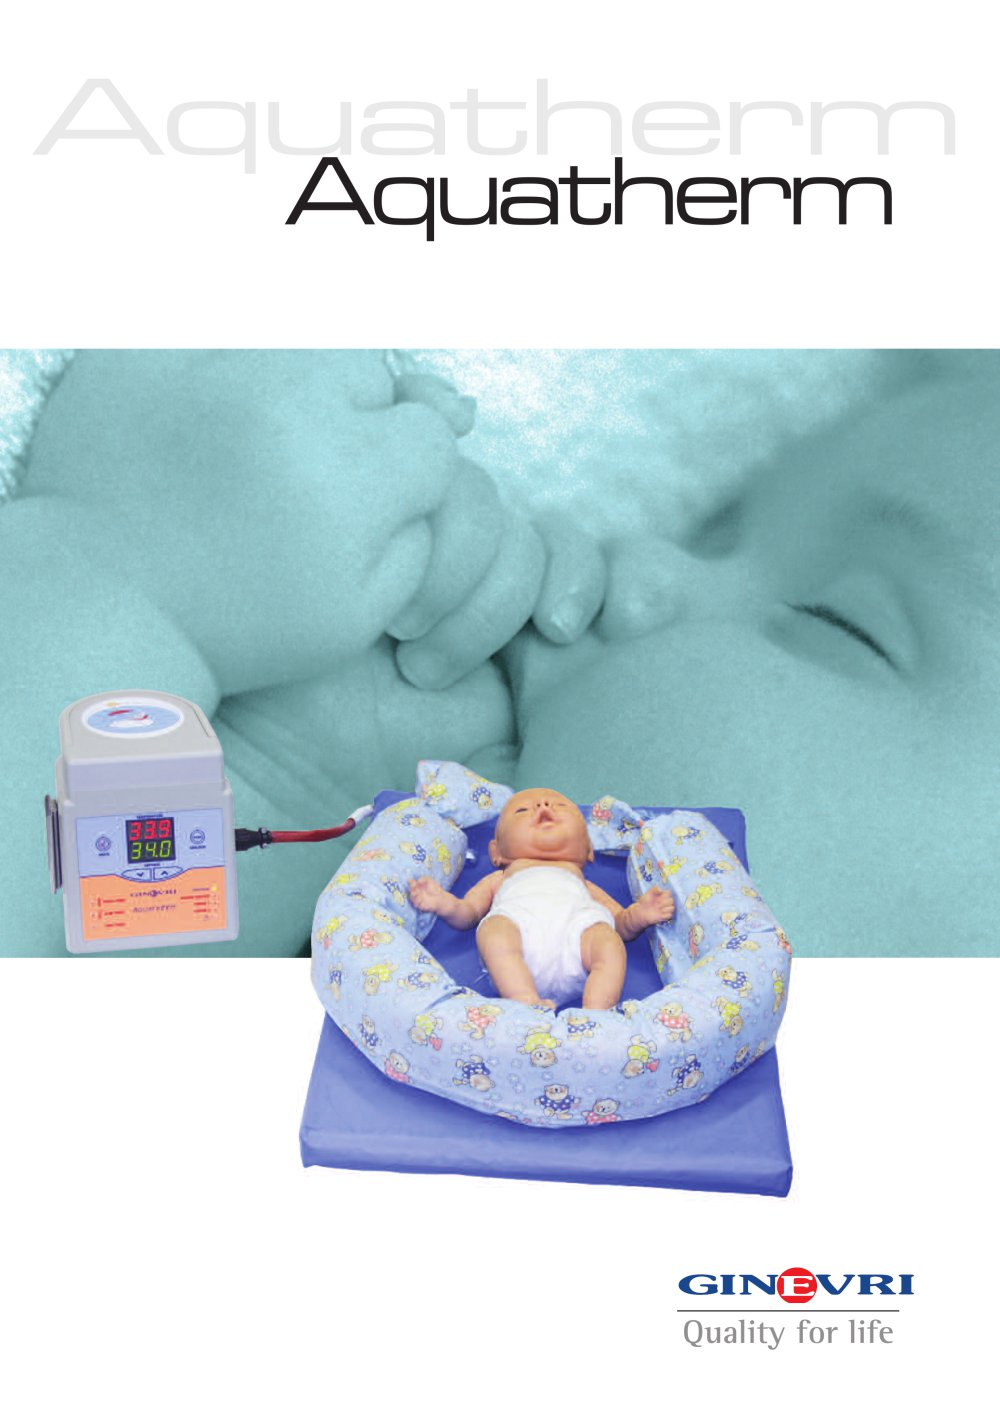 Catalogue pdf aquatherm